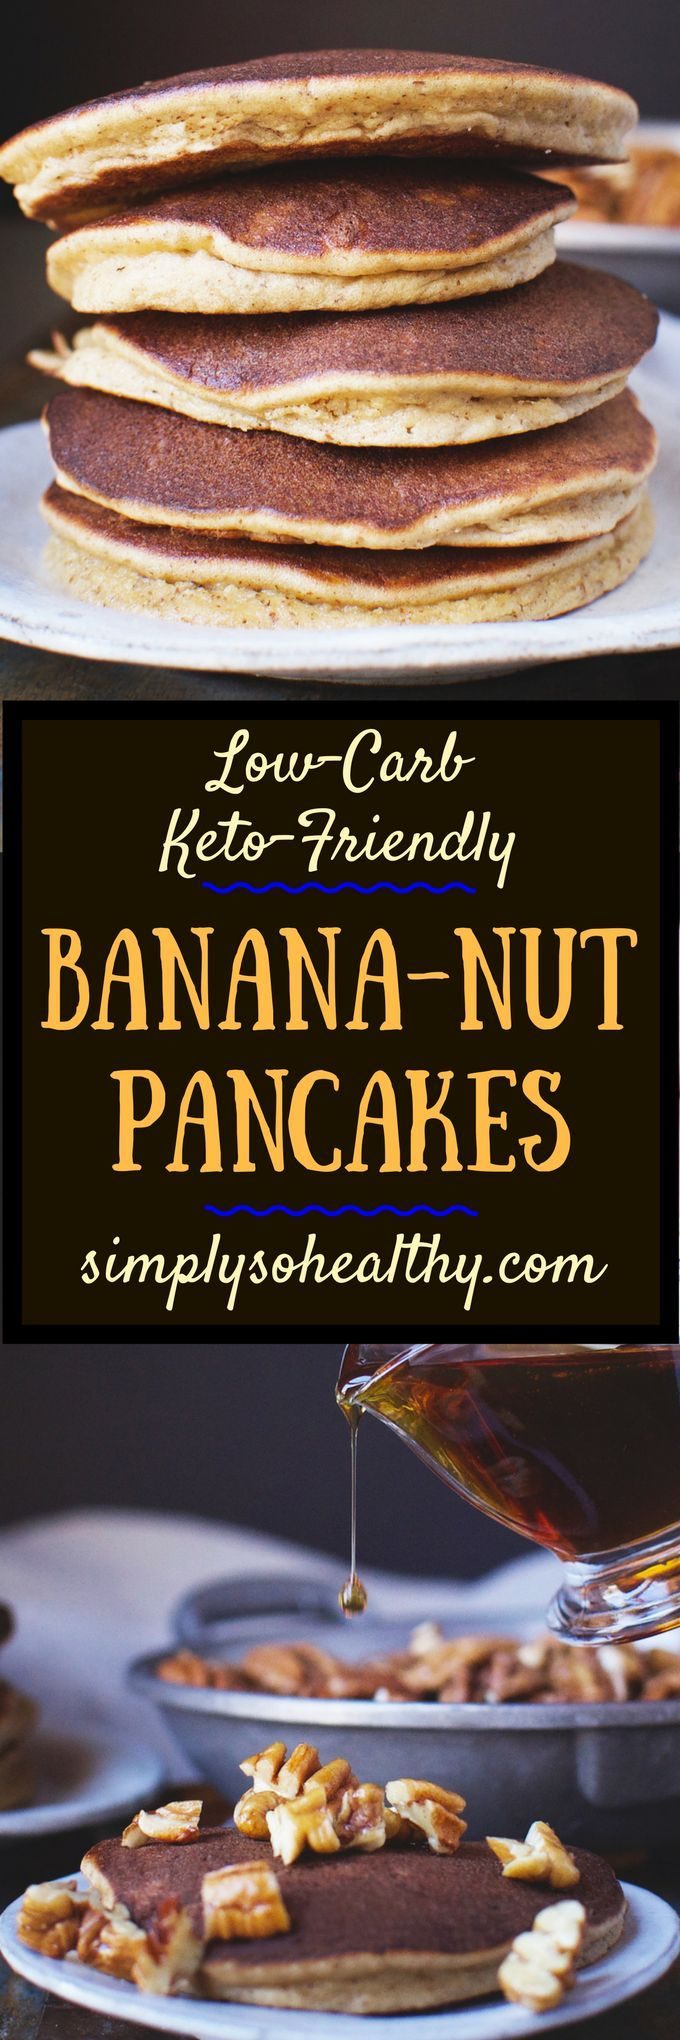 LOW-CARB BANANA NUT PANCAKES-BLENDER RECIPE - These Low-Carb Banana Nut Pancakes taste like banana bread, but can be made in a flash. Even though they taste like banana, these pancakes can be part of a low-carb, keto, Atkins, diabetic, gluten-free, grain-free, and Banting diet.  #lowcarbrecipe